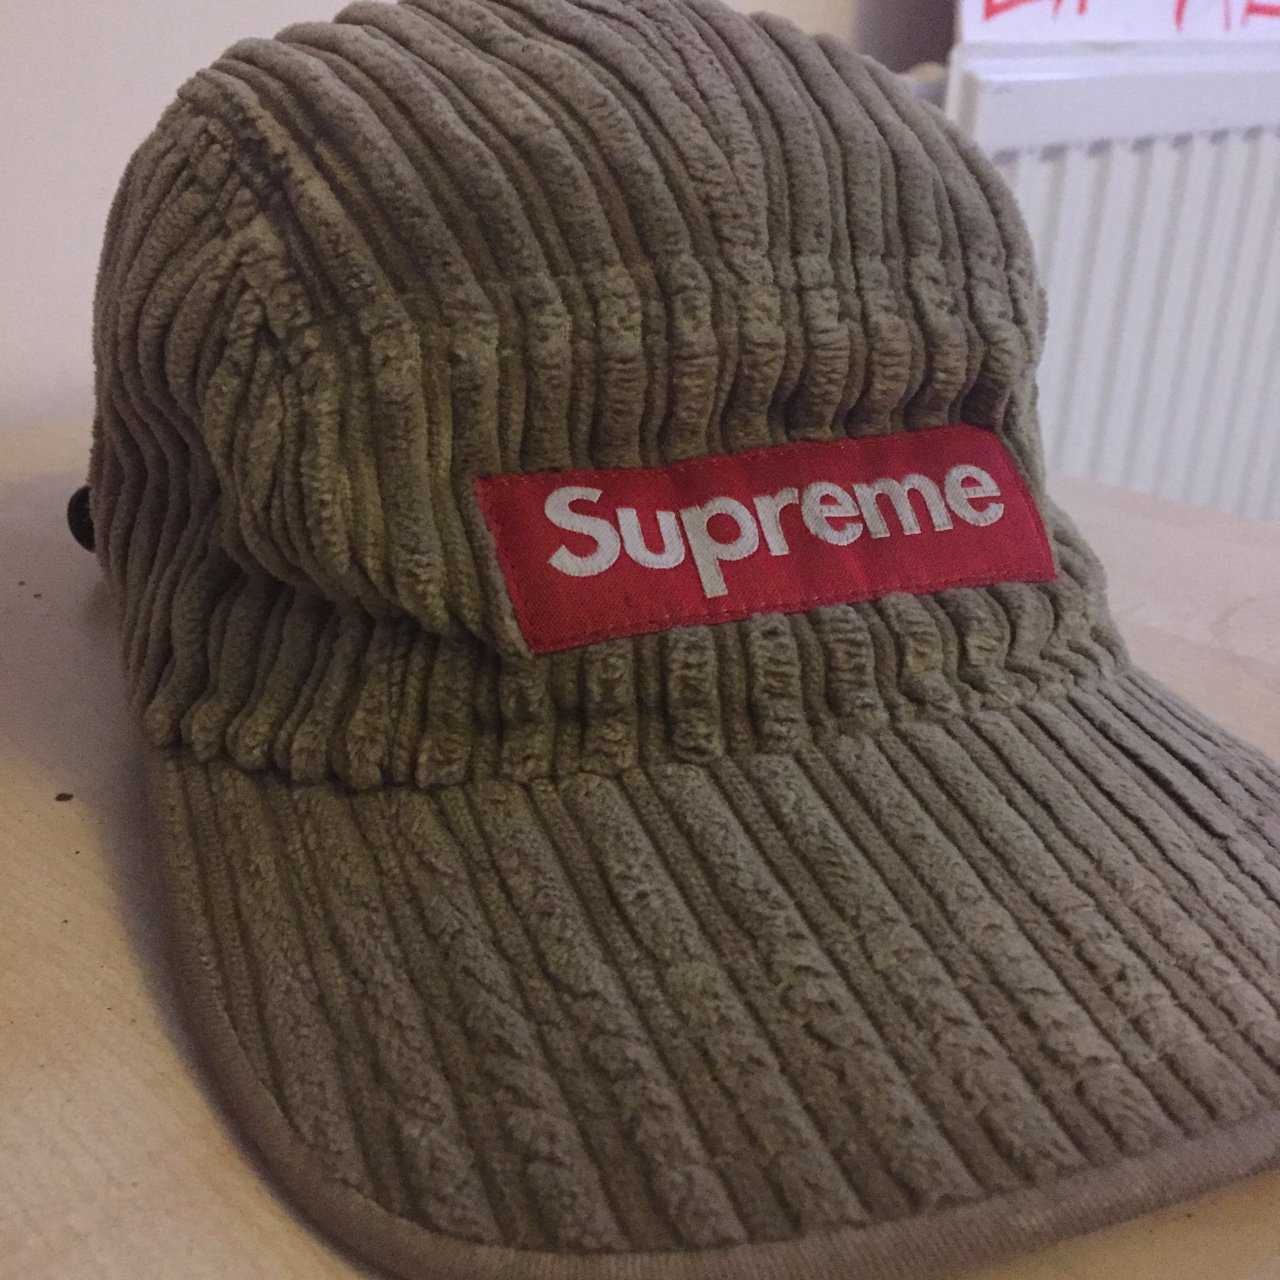 a448736c999 Corduroy supreme 5 panel hat. 9 10 condition. No stains or - Depop